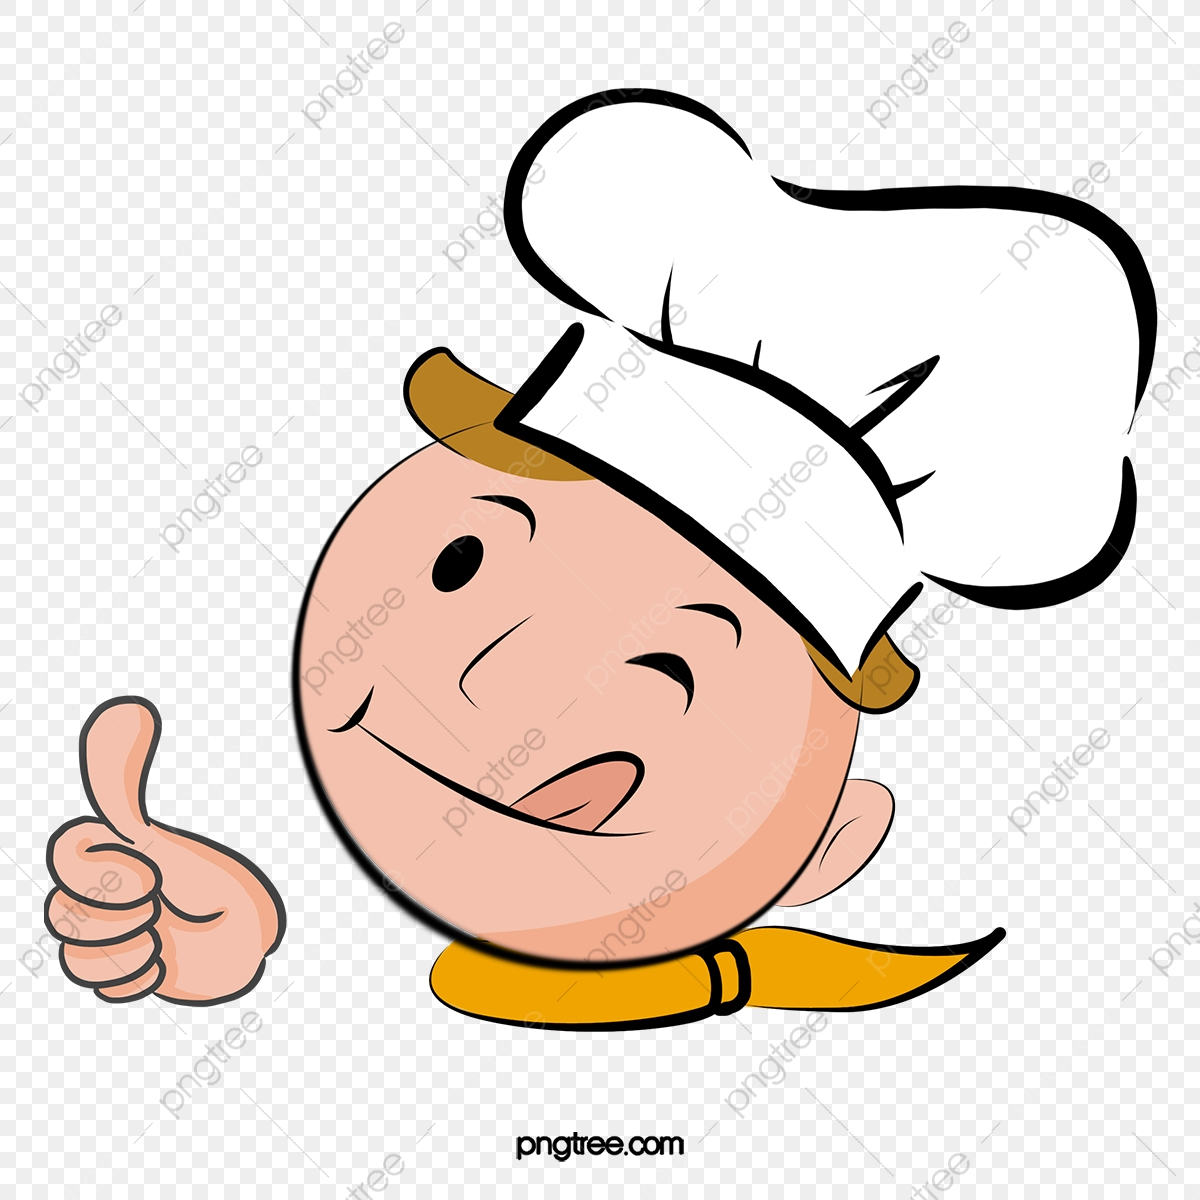 chef png vector psd and clipart with transparent background for free download pngtree https pngtree com freepng chef cartoon 1309791 html